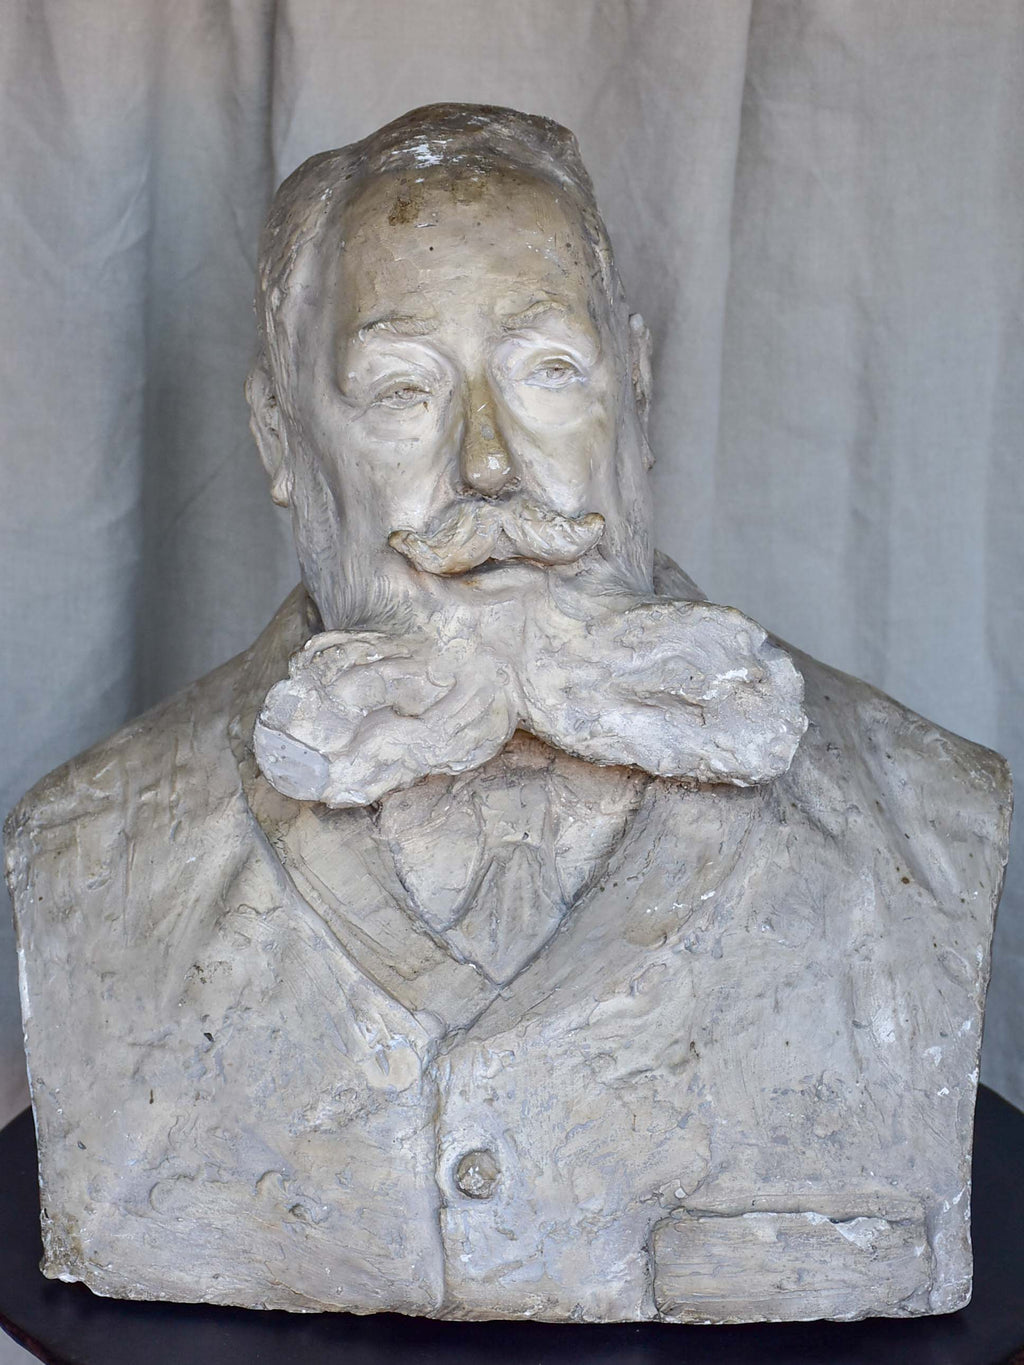 19th Century French bust - plaster